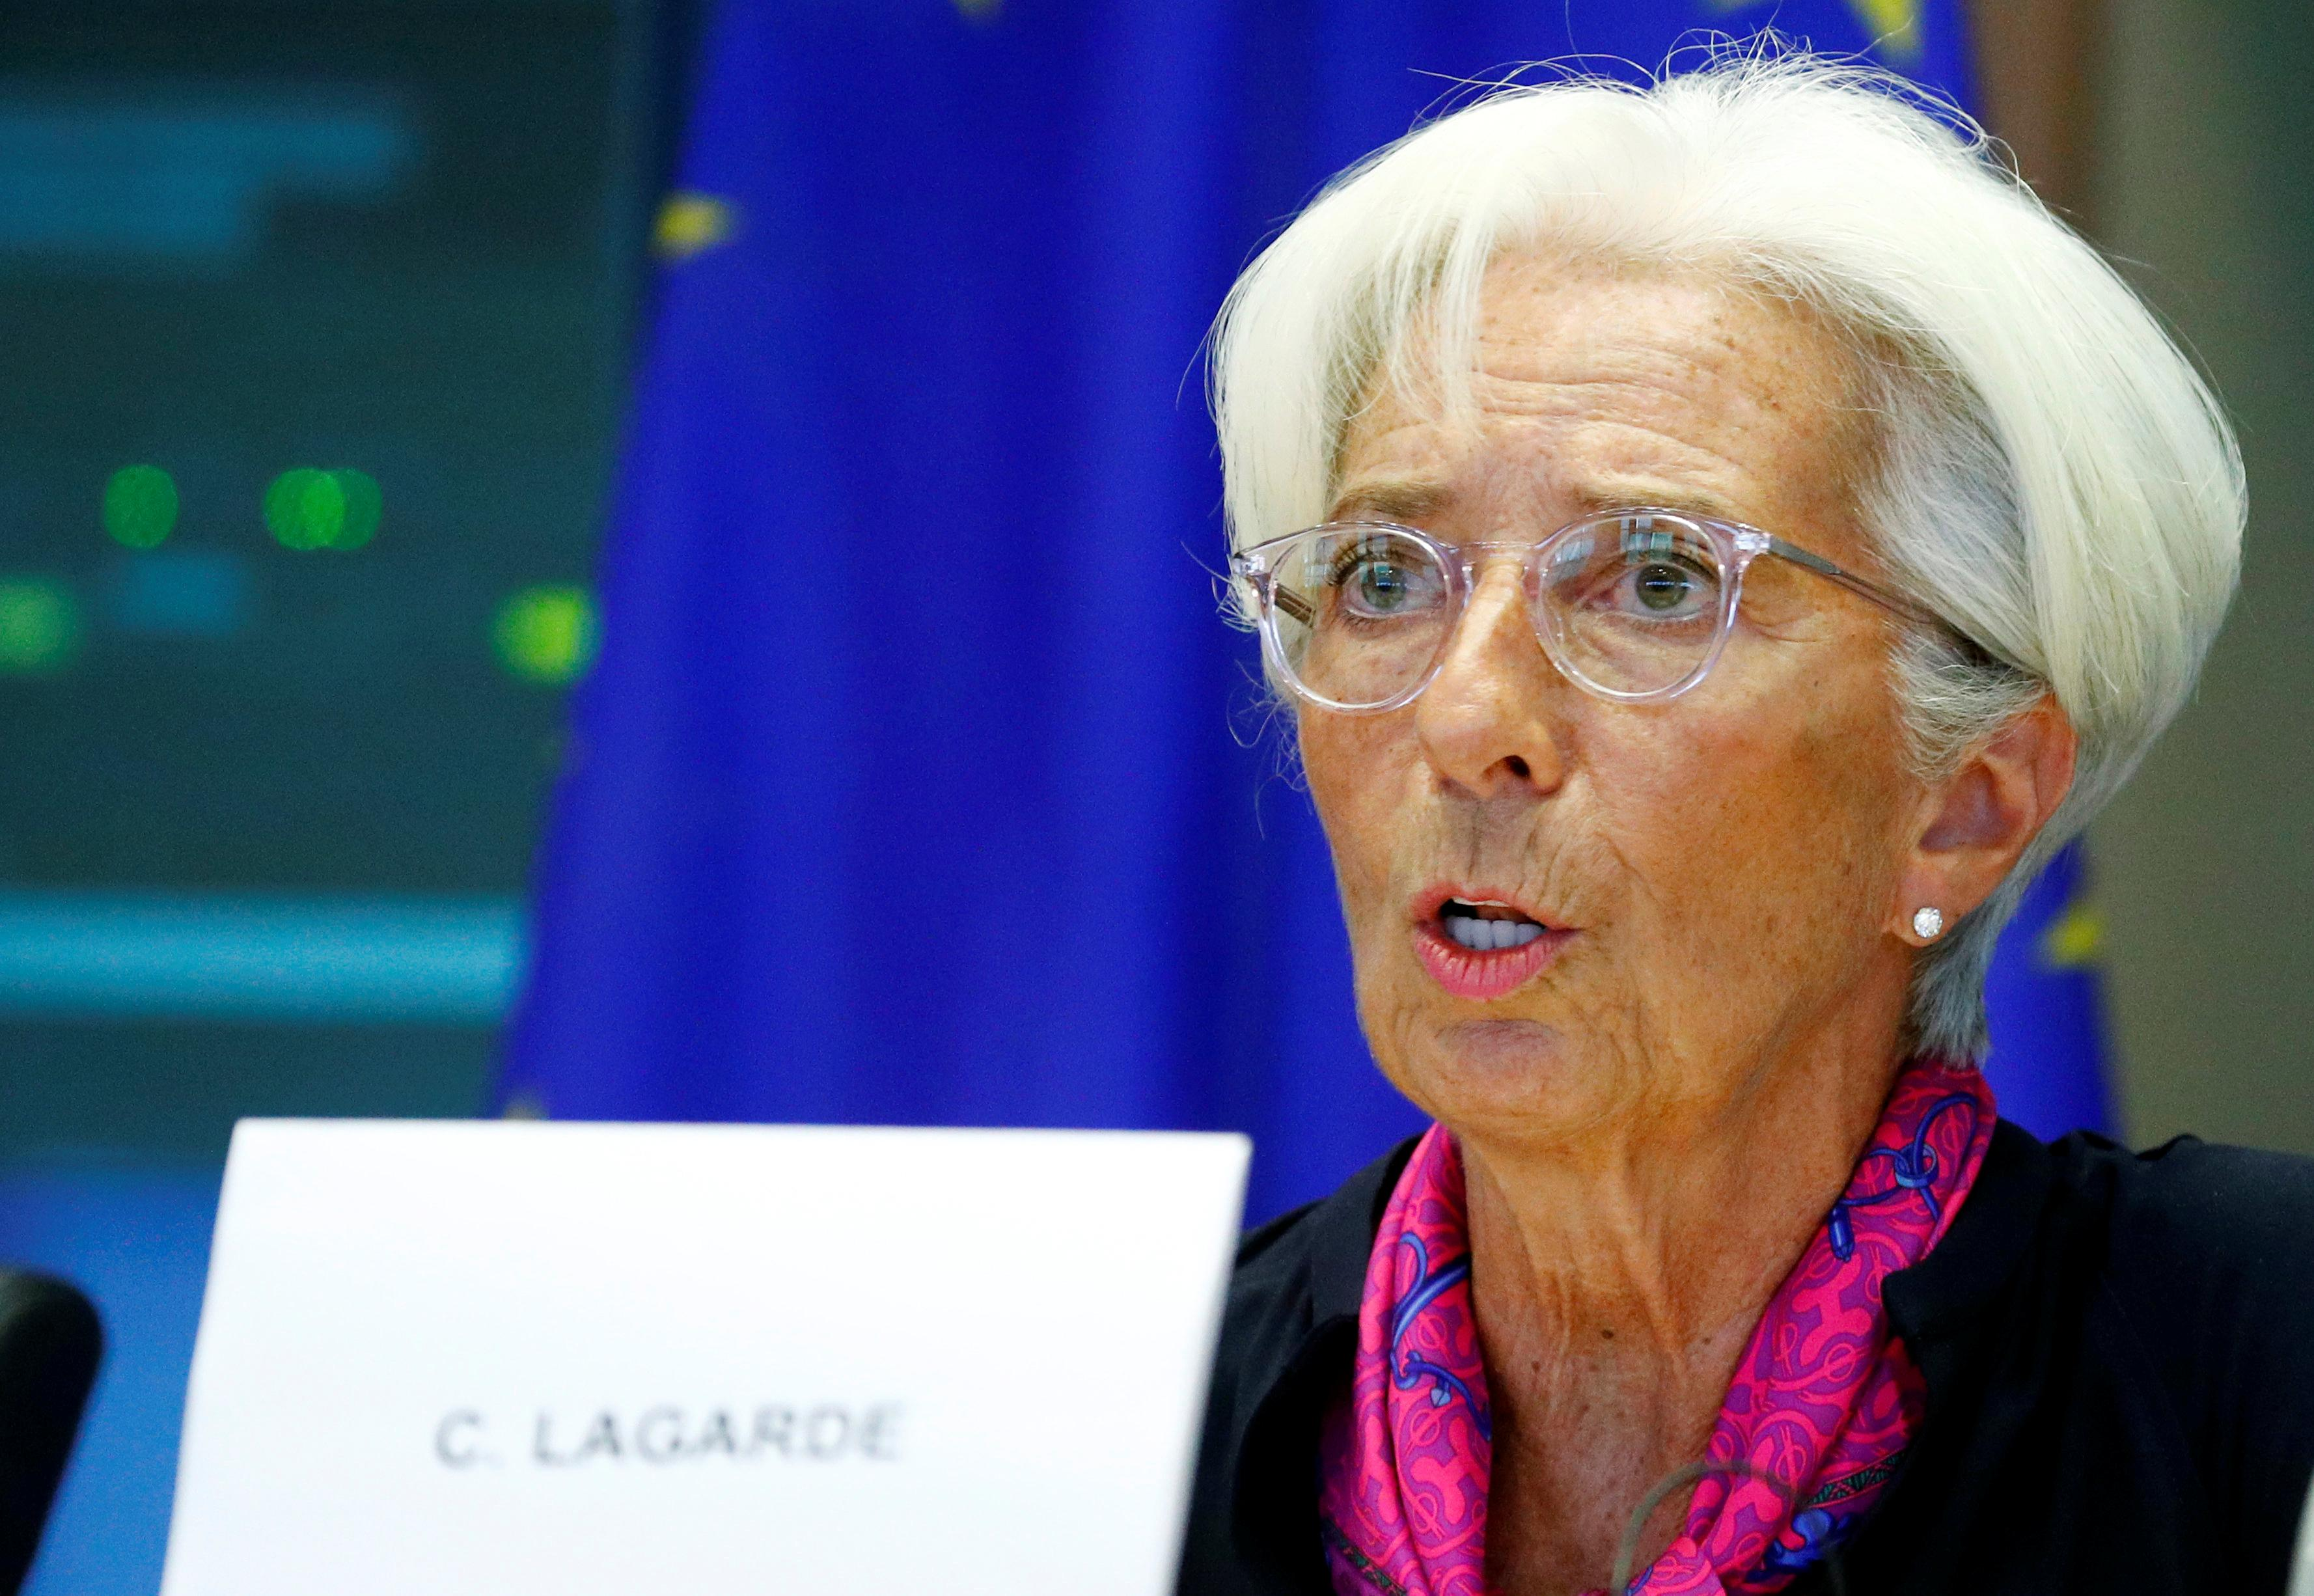 ECB needs policy review, should boost focus on climate change - Lagarde